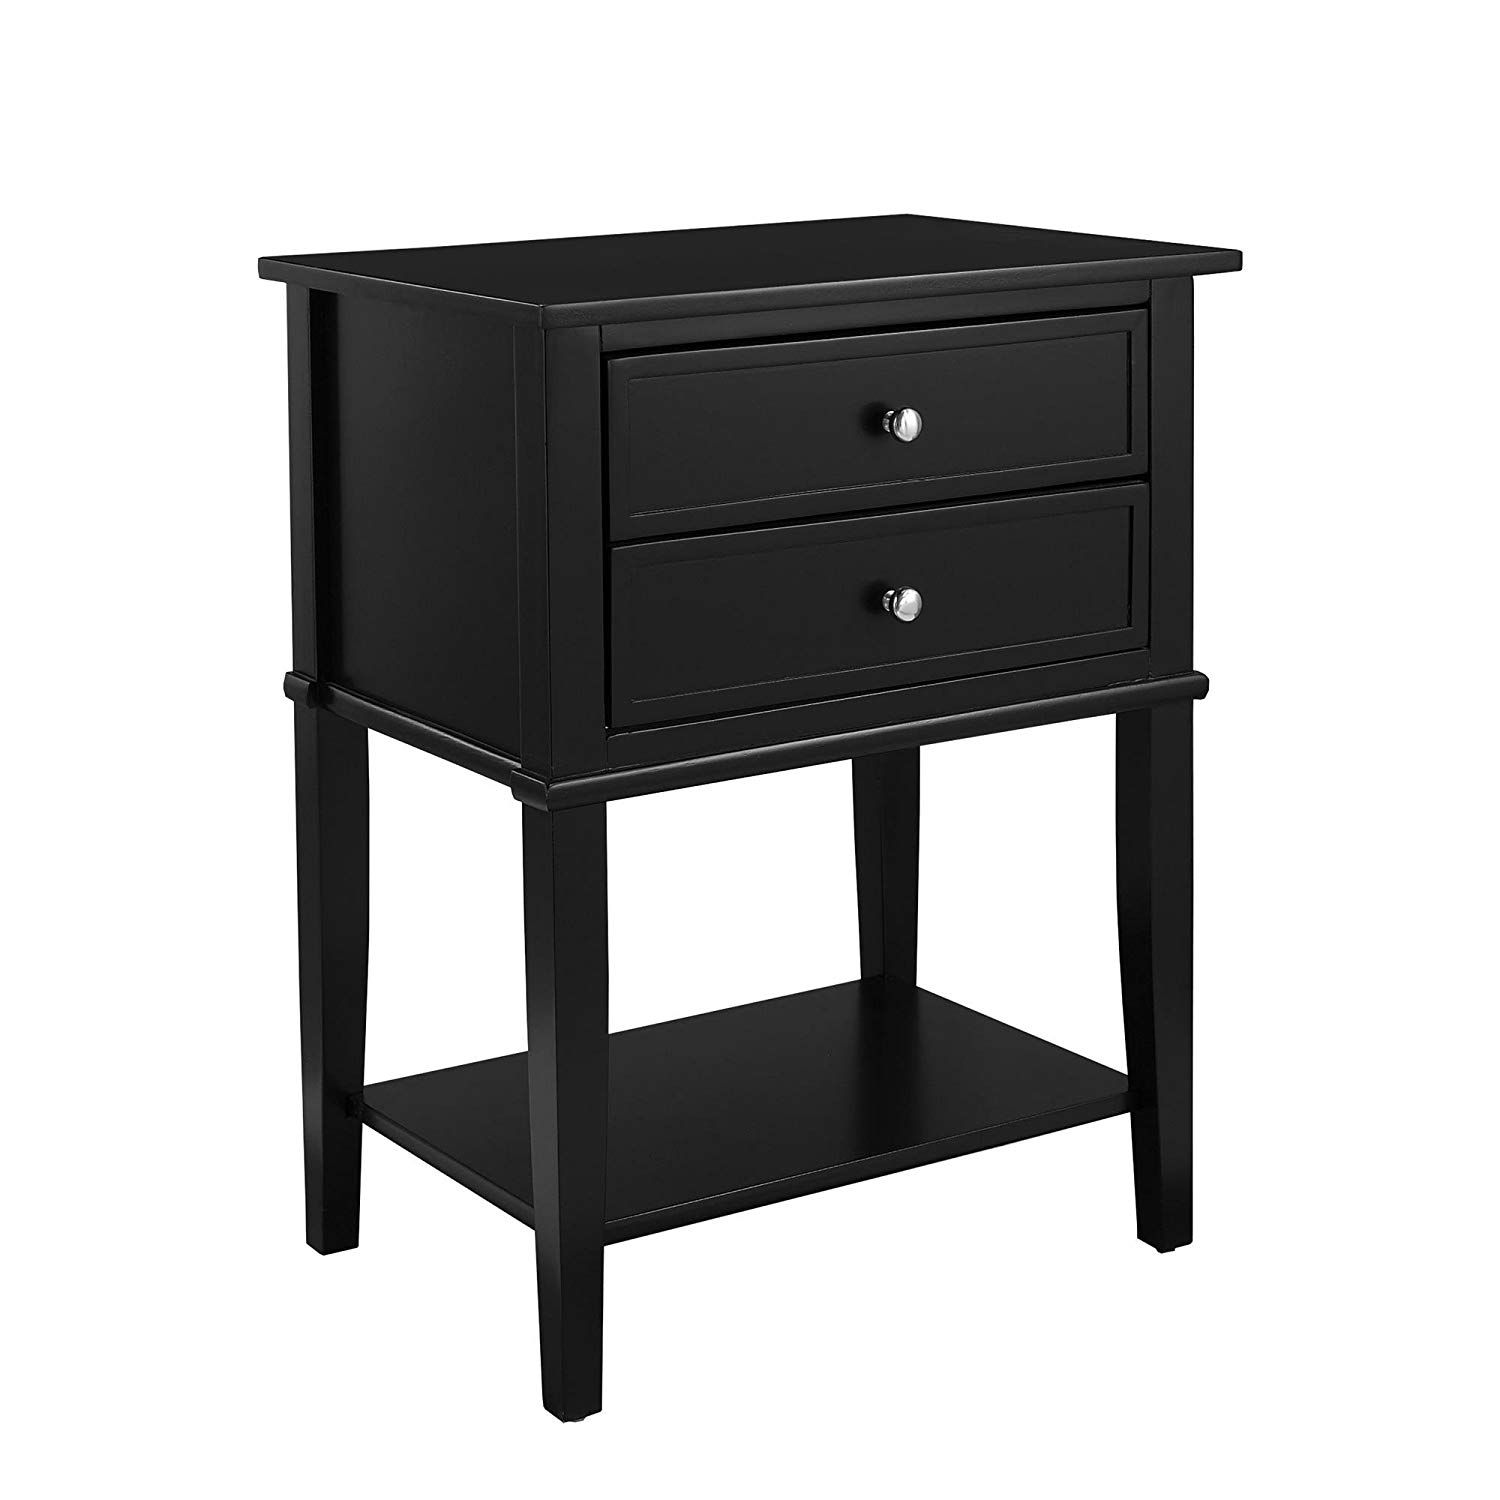 ameriwood home franklin accent table black with storage drawers kitchen dining antique ese lamps ikea living room chairs grey round coffee narrow for small spaces tall skinny